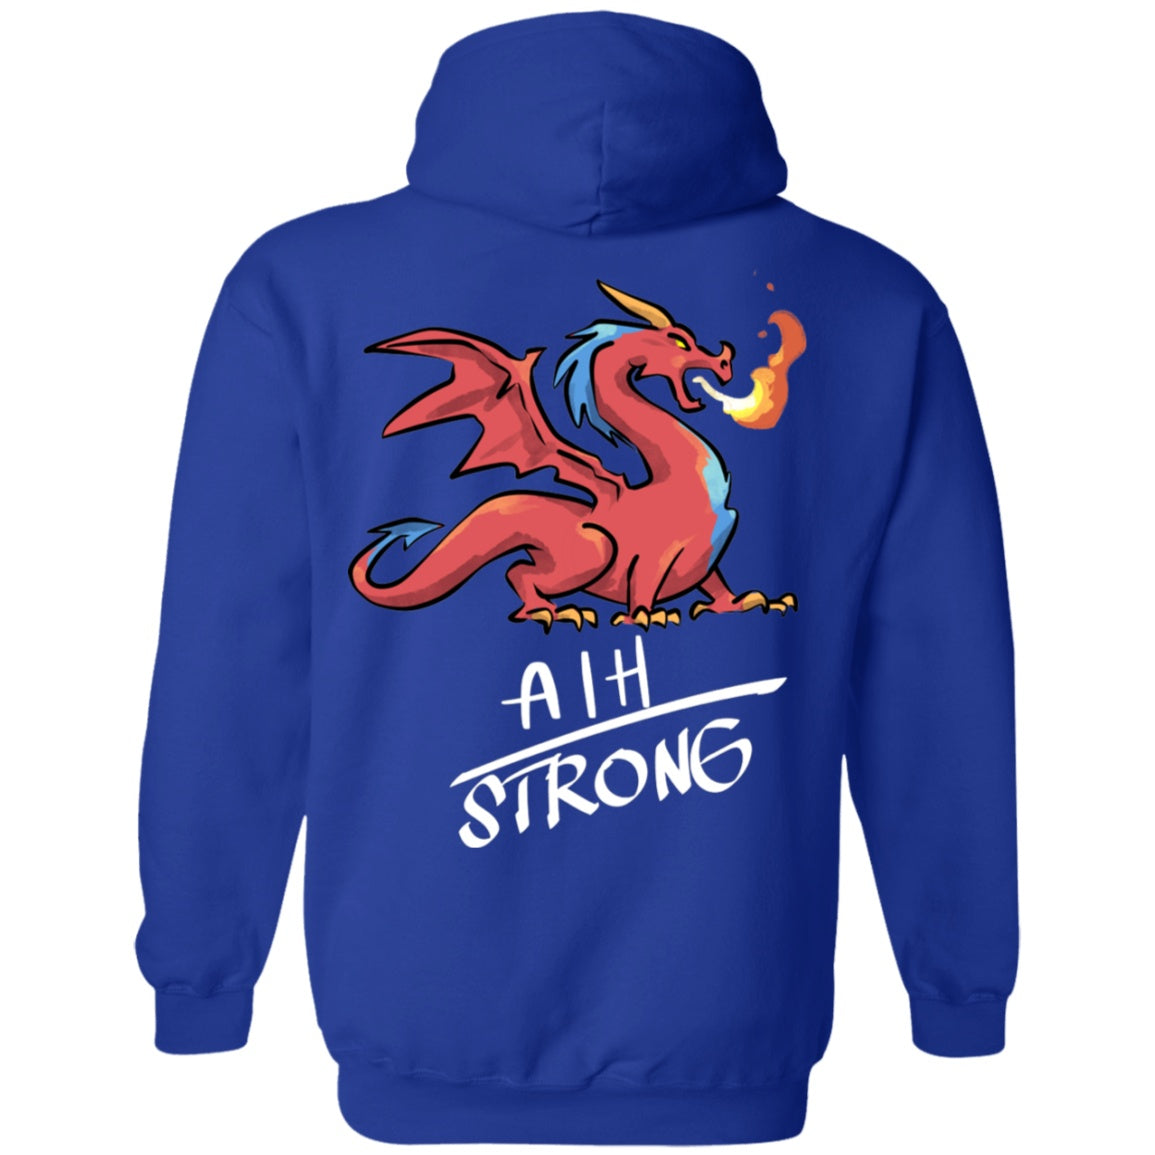 AIH Strong Dragon Pullover Hoodie 8 oz. - The Unchargeables